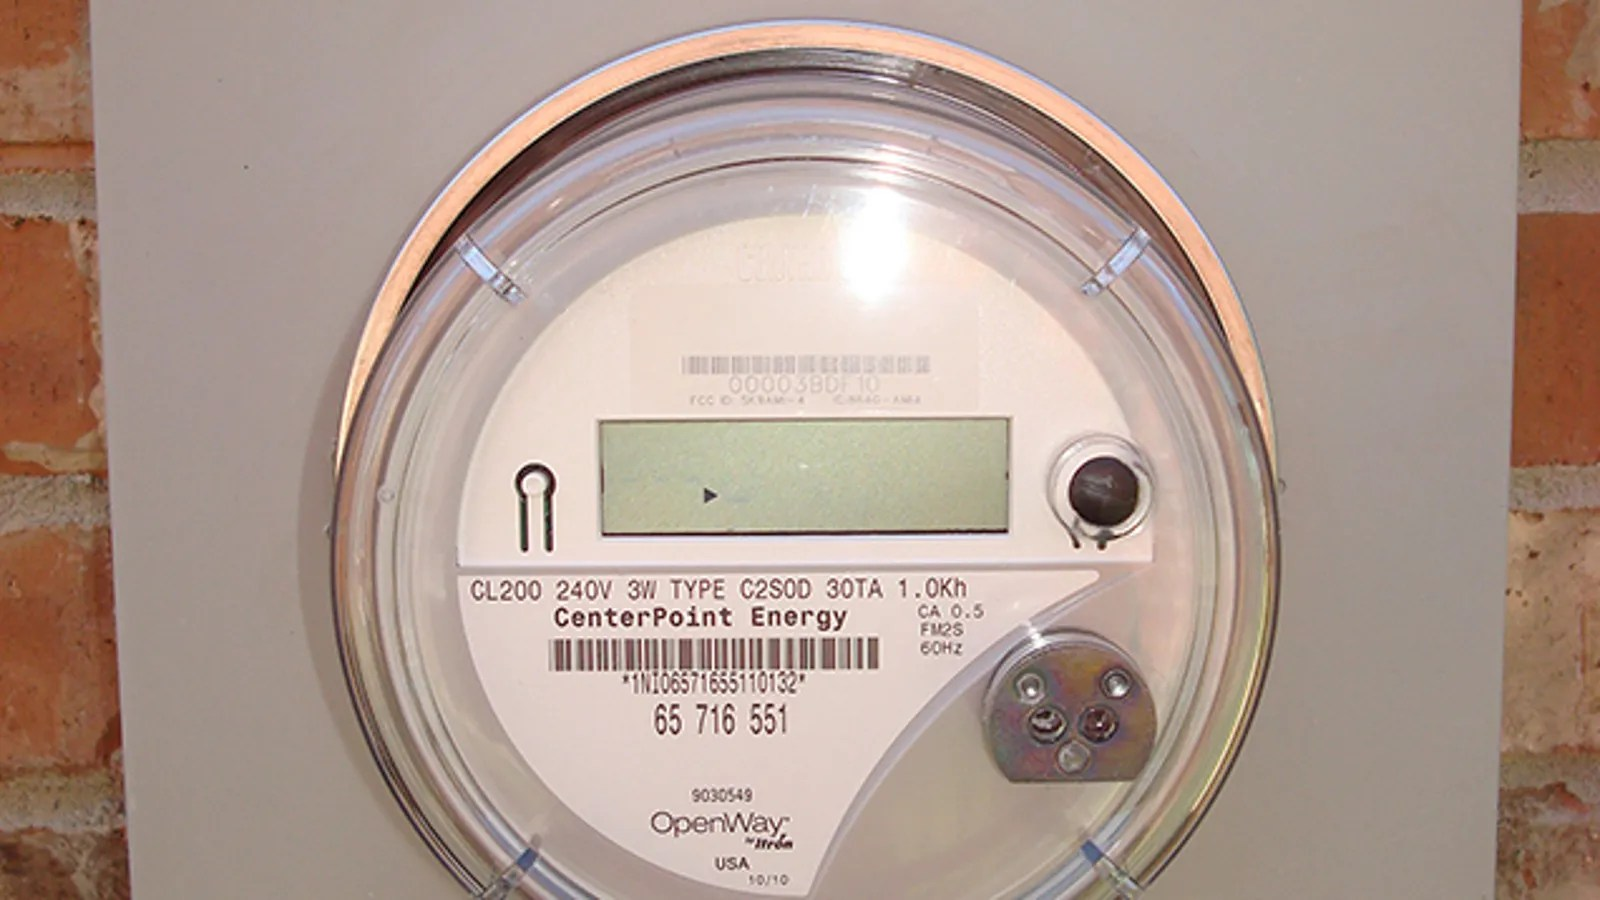 For House Wiring Circuit Breaker Check Your Power Meter With Everything Off To Identify